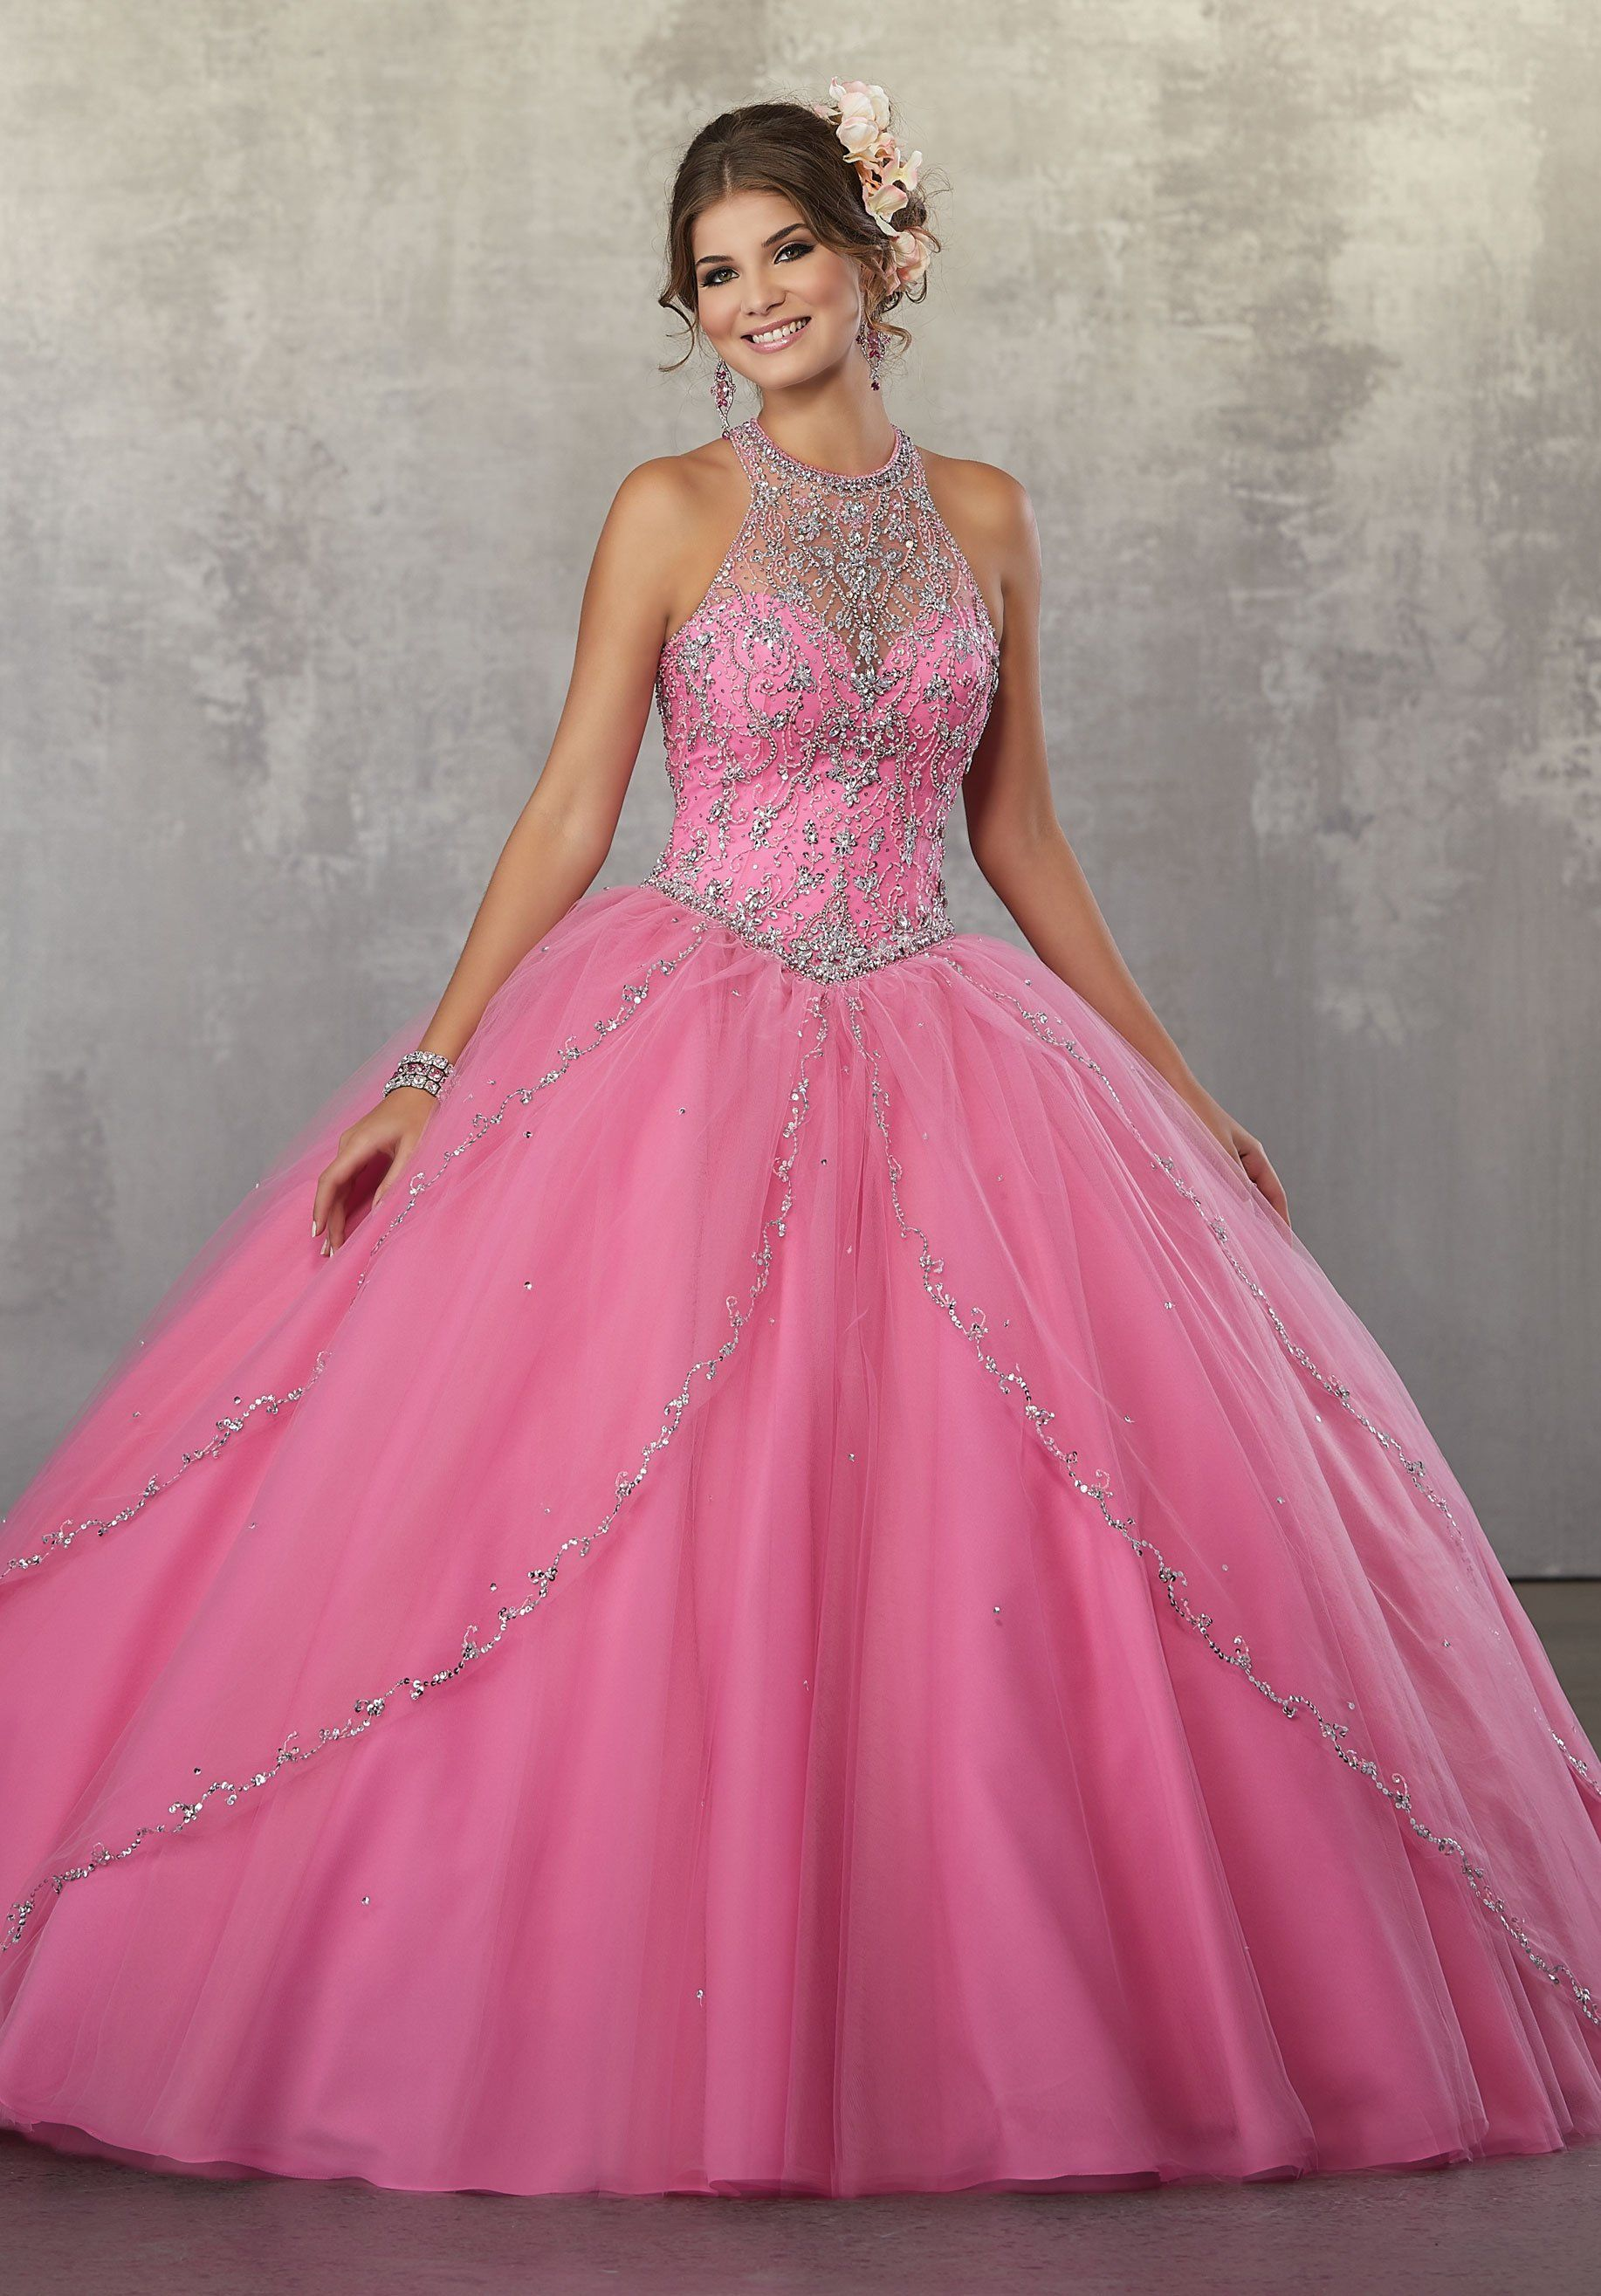 Illusion A-Line Quinceanera Dress by Mori Lee Vizcaya 89170 | Quince ...